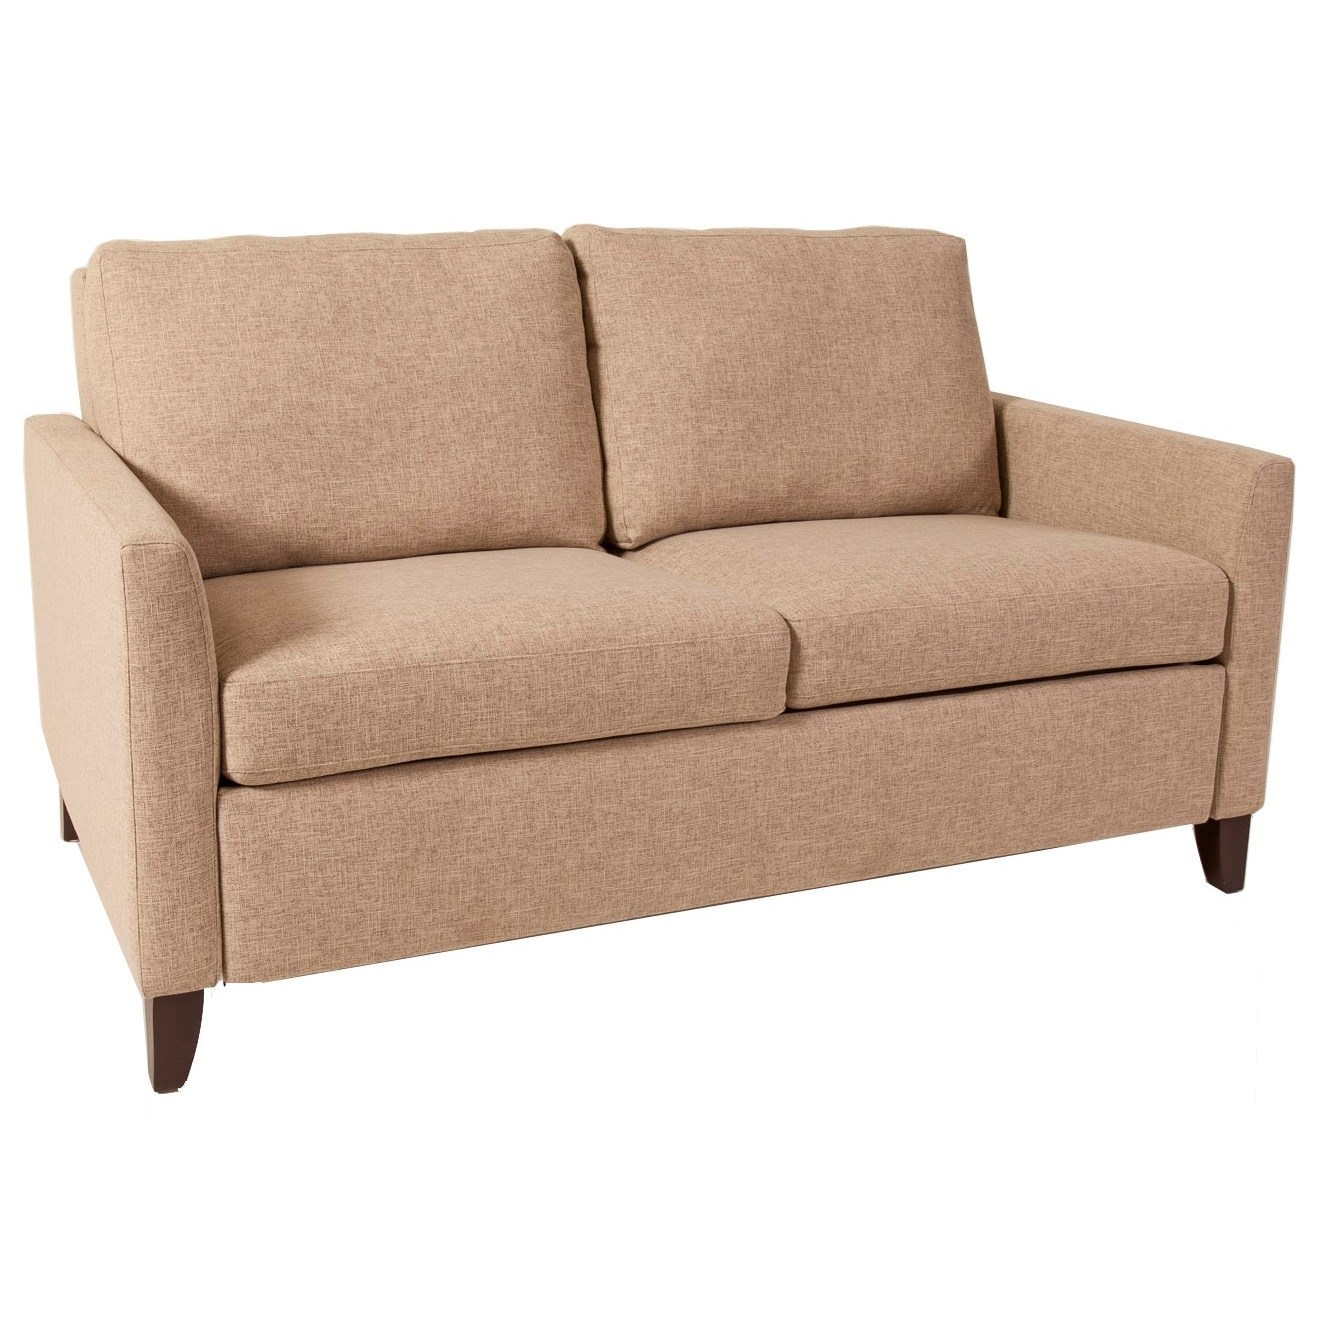 American Leather Comfort Sleeper   HannahContemporary Full Sofa Sleeper ...